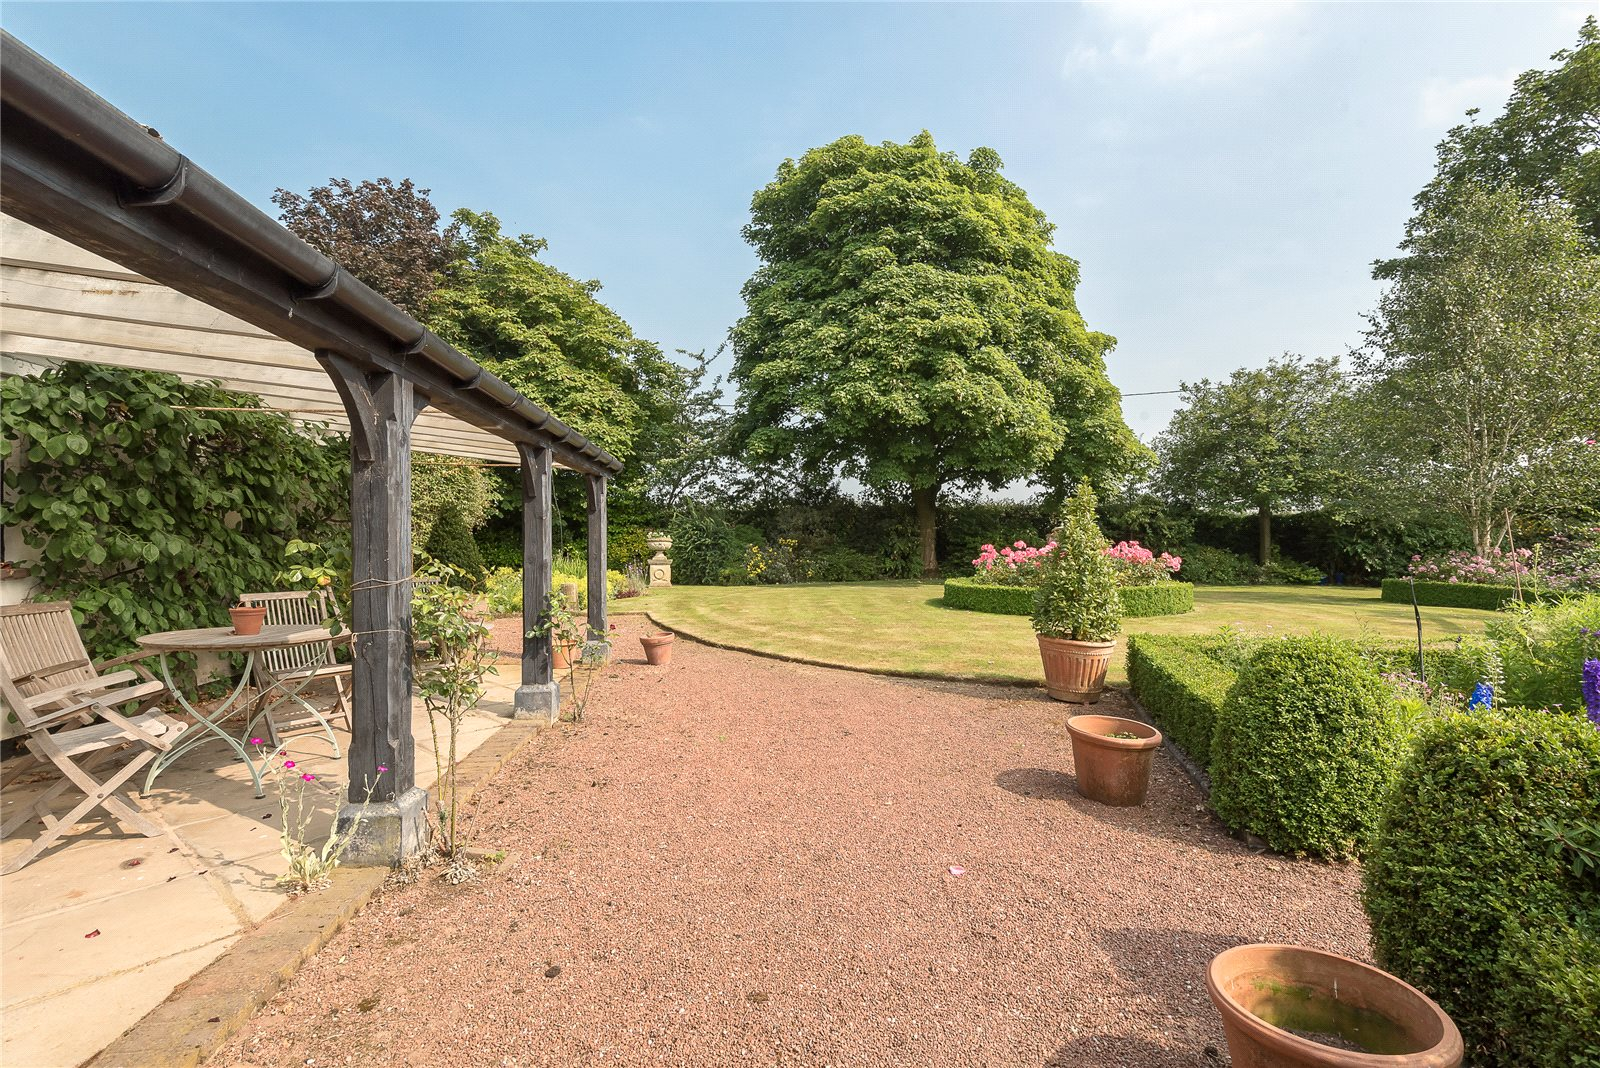 Additional photo for property listing at Peckforton Hall Lane, Peckforton, Tarporley, Cheshire, CW6 Tarporley, Angleterre